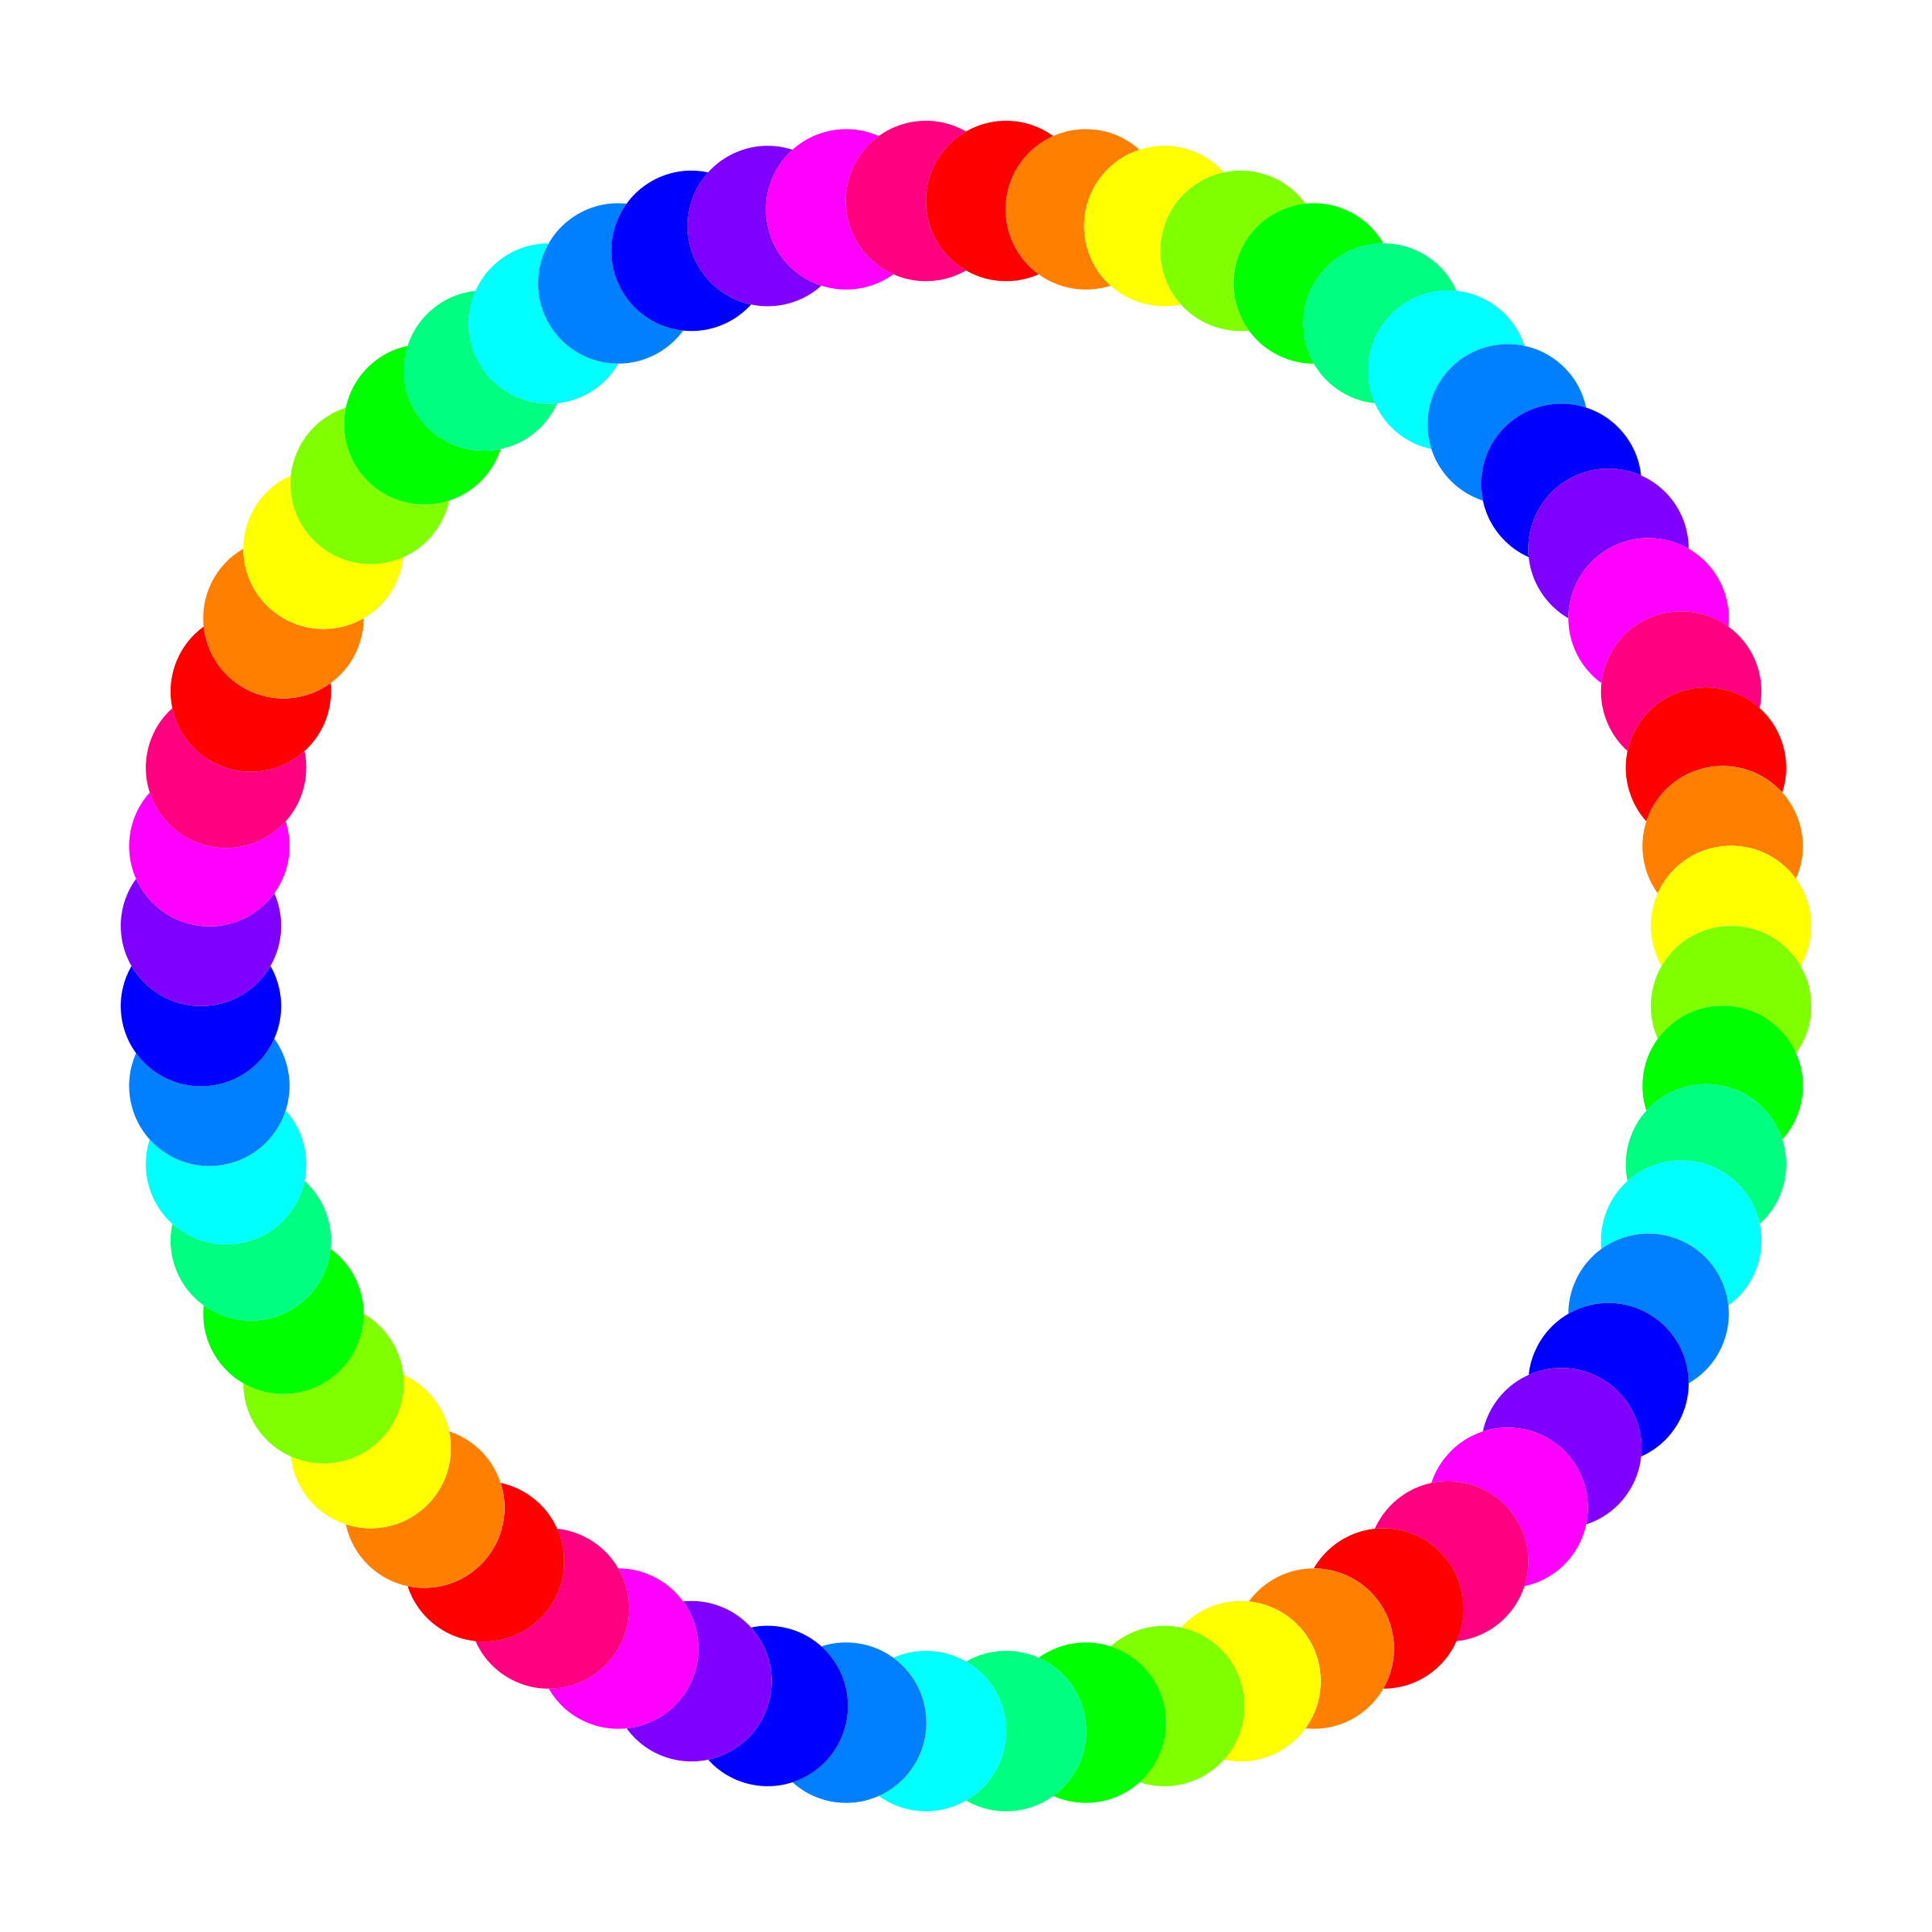 circle icons png. Planet clipart ring logo